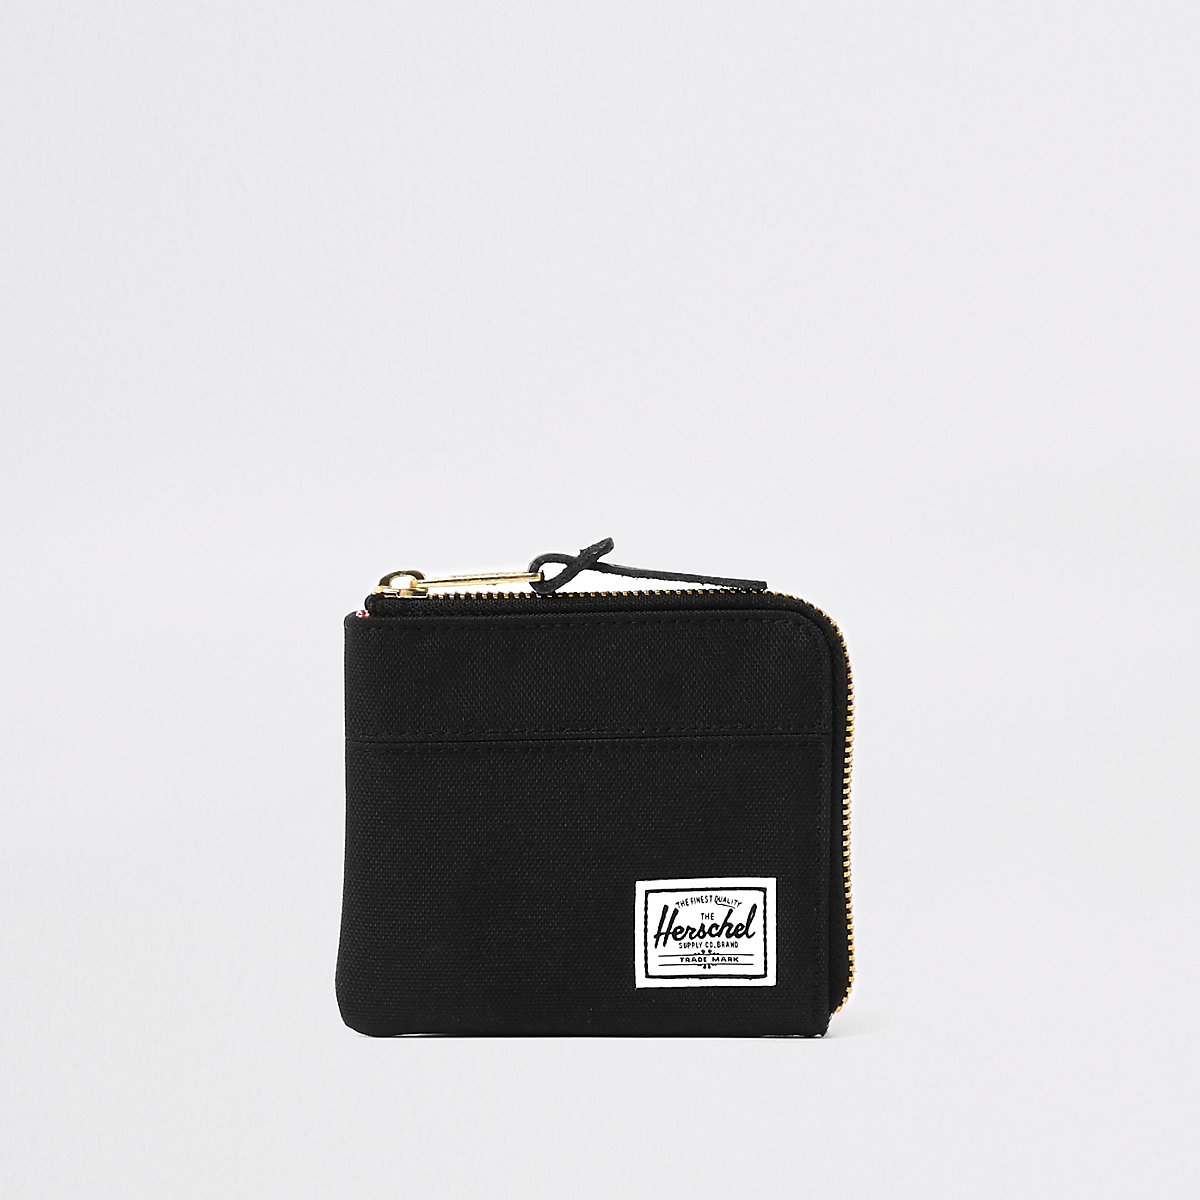 Herschel black Johnny zip wallet